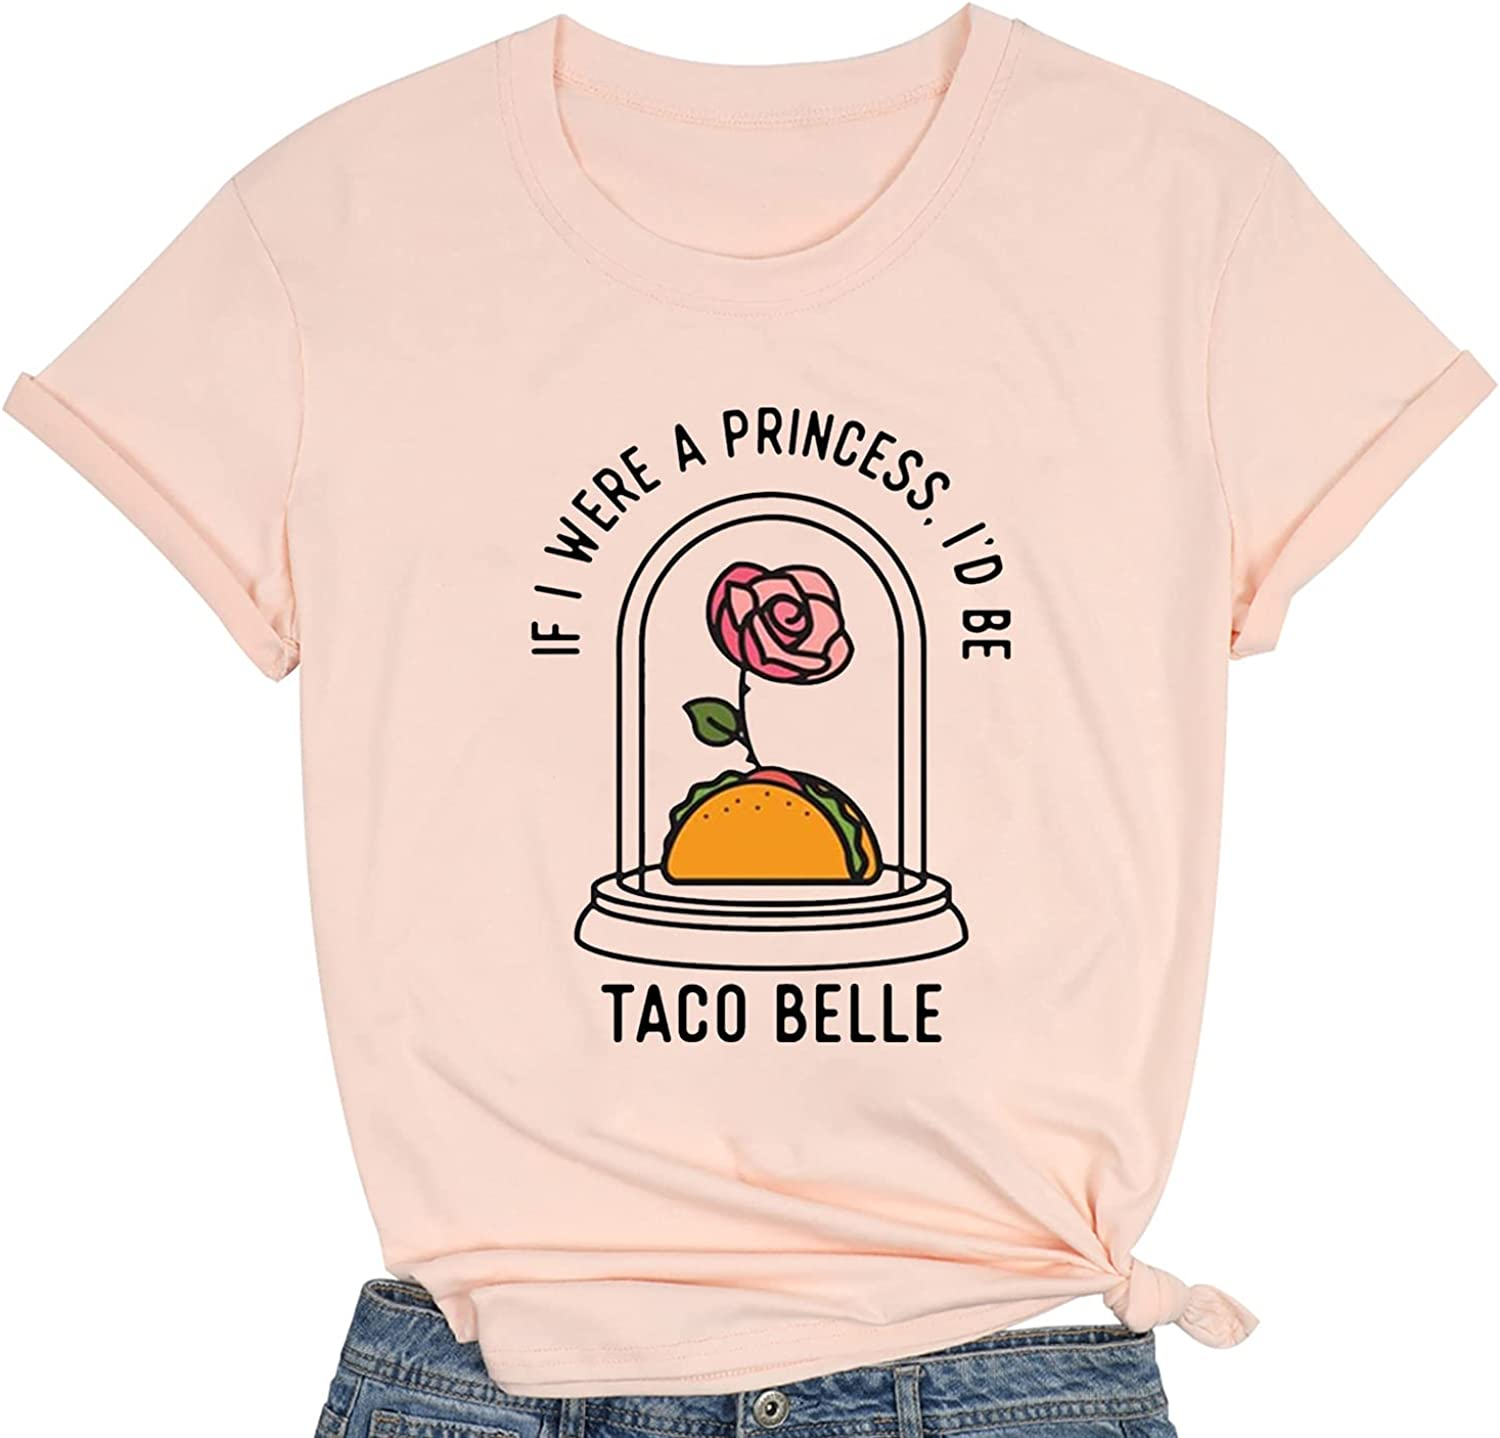 If I were A Princess I'd Be Taco Belle Shirt Women Girls Funny Letter Print Taco Belle T-Shirt Taco Lover Gift Tee Tops